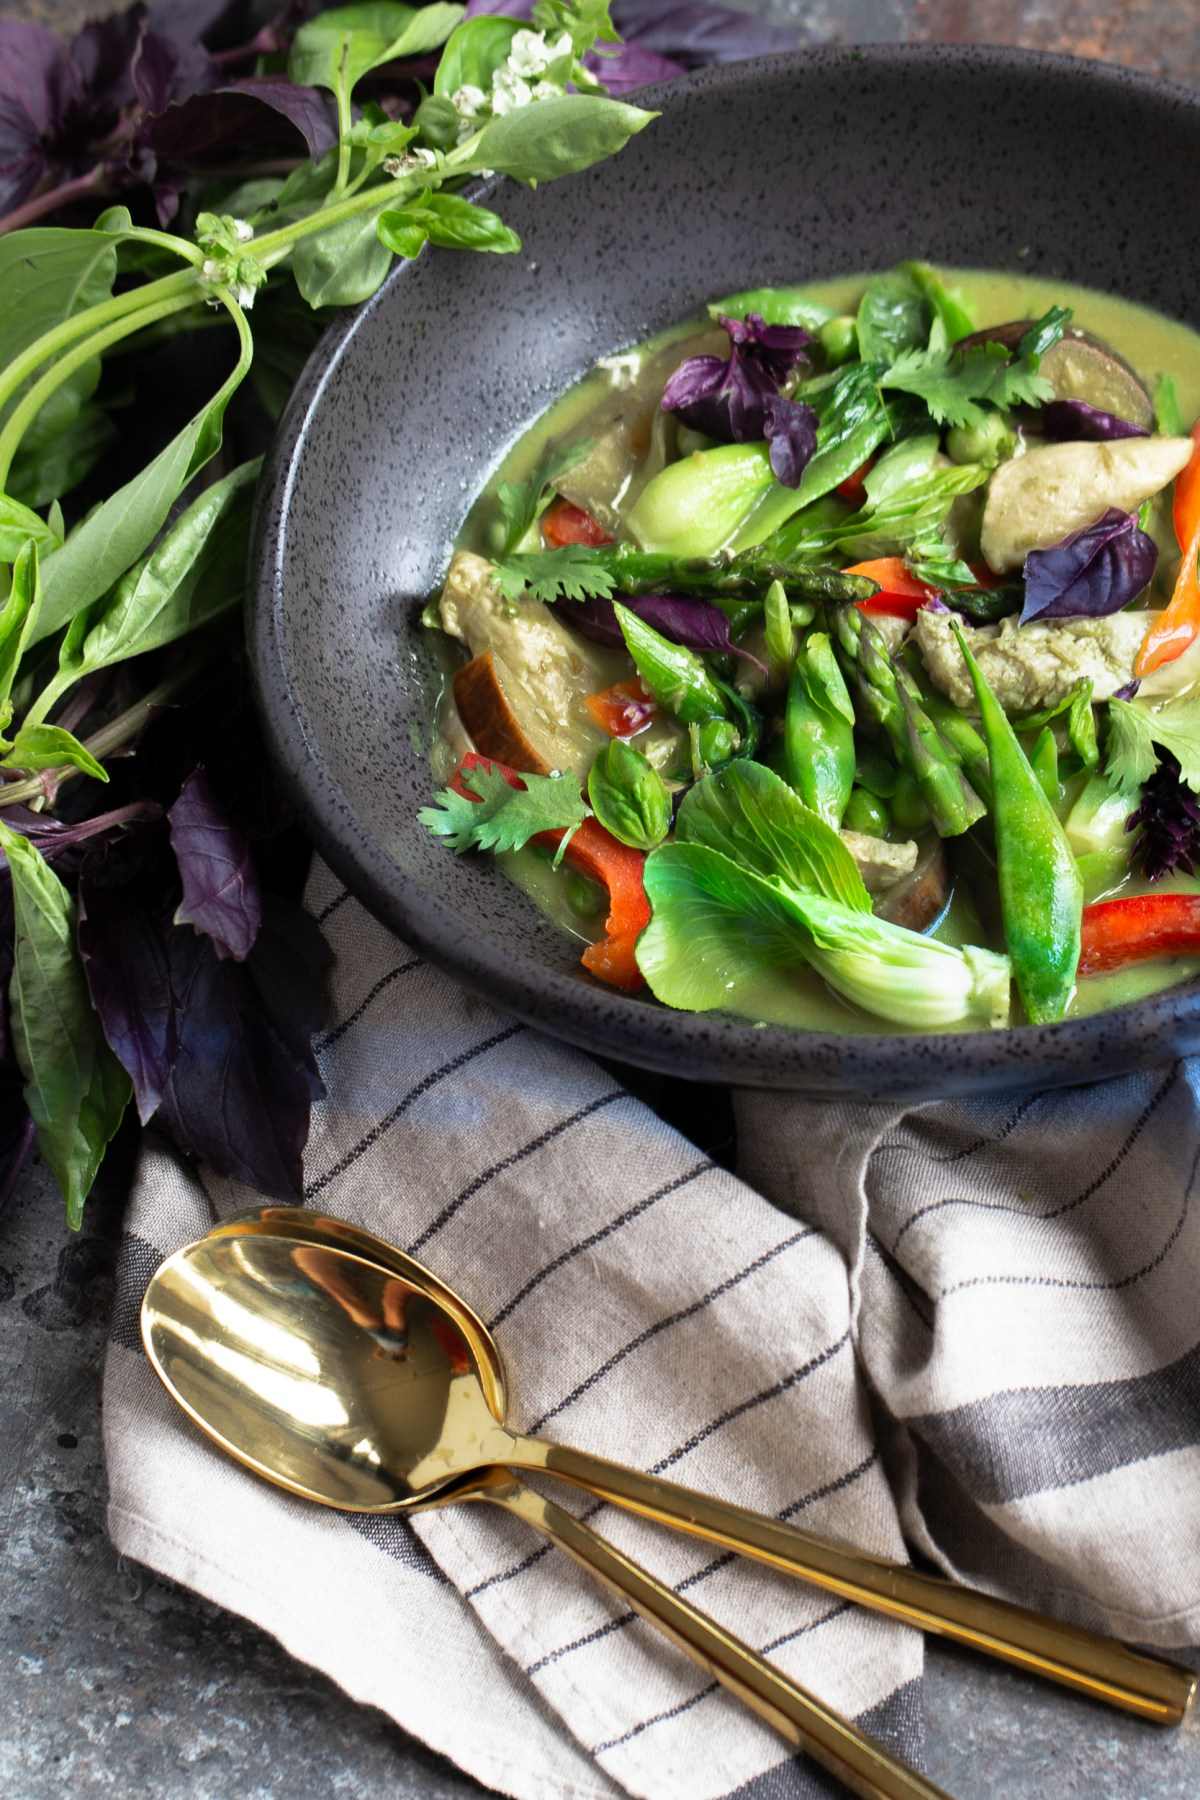 Thai green curry - so easy and delicious! Better than take out